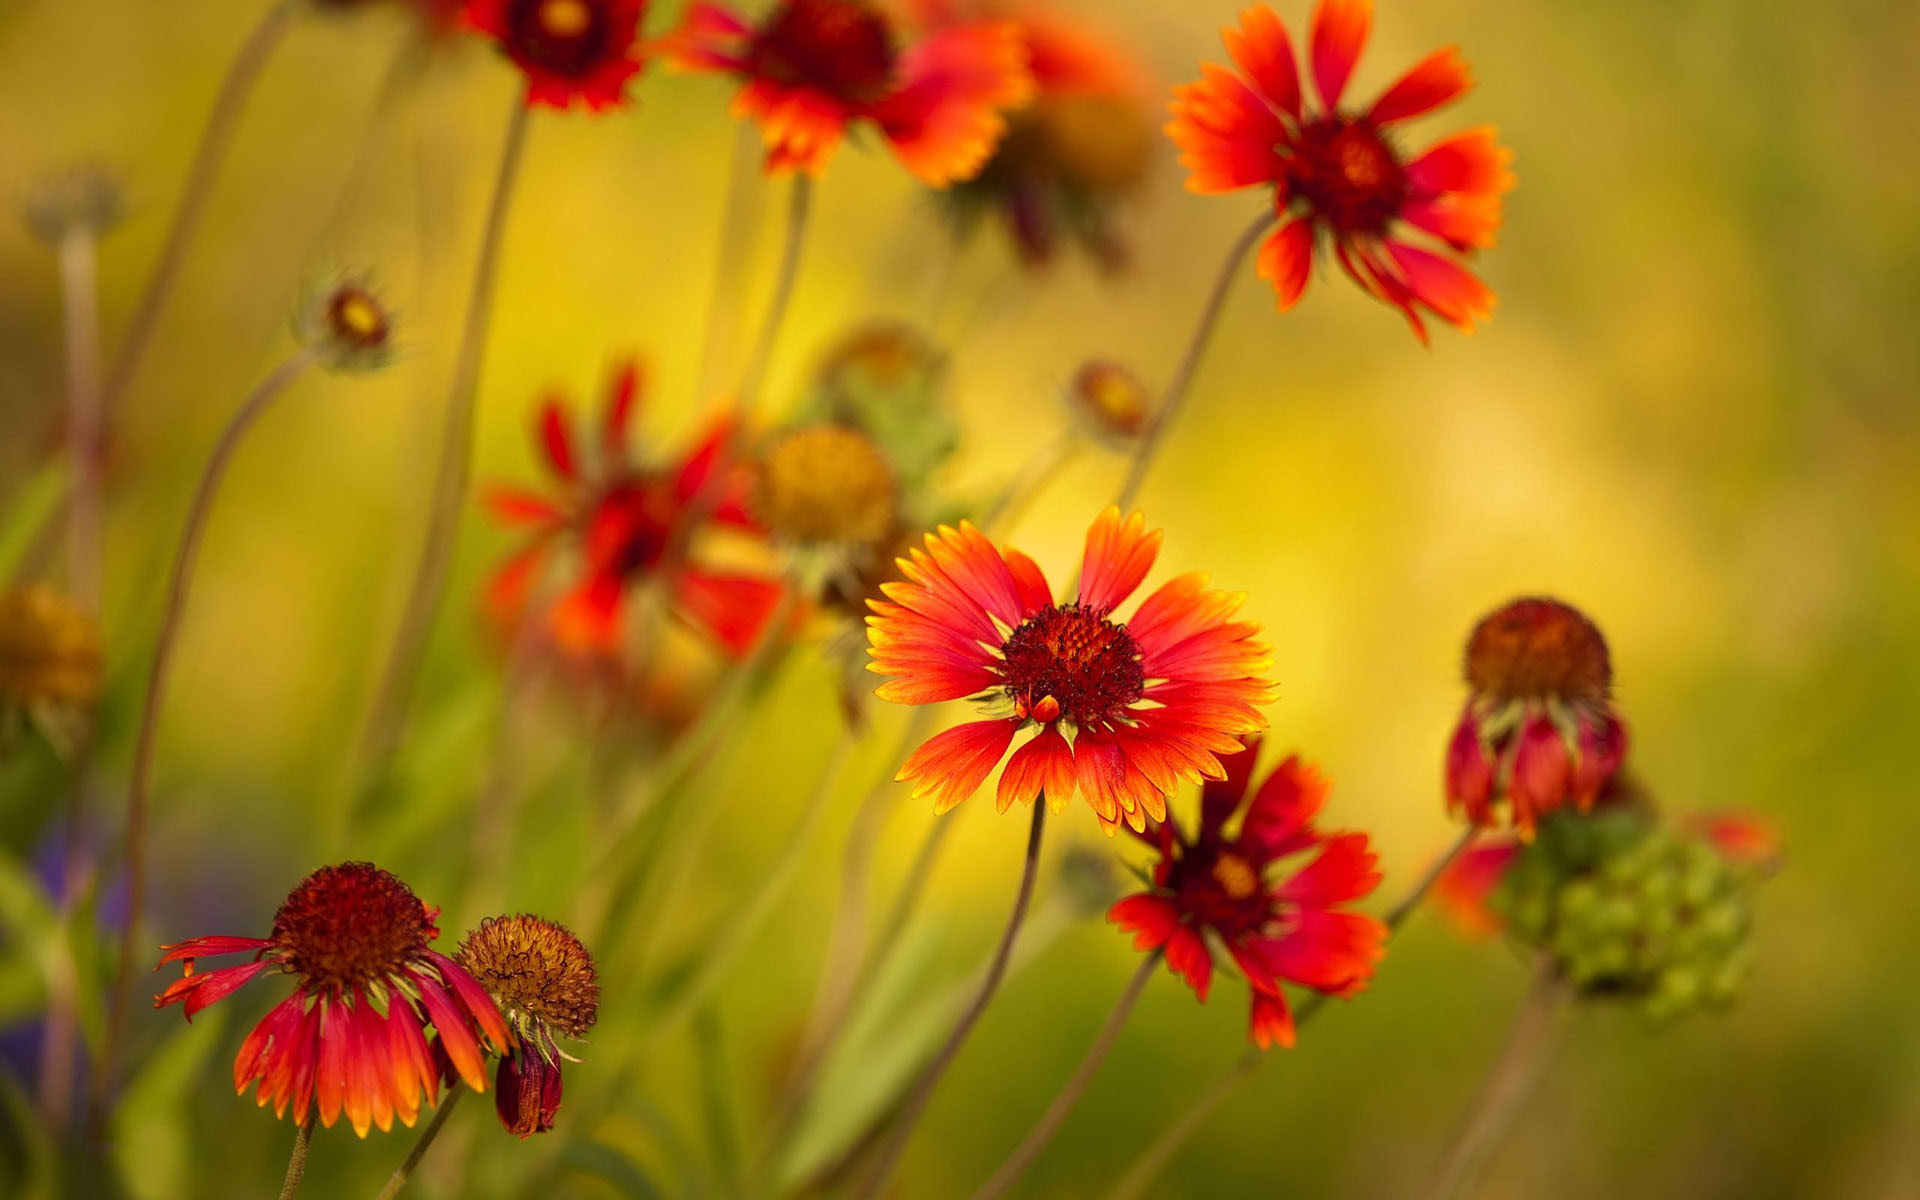 Red sunflowers HD wallpaper | HD Latest Wallpapers